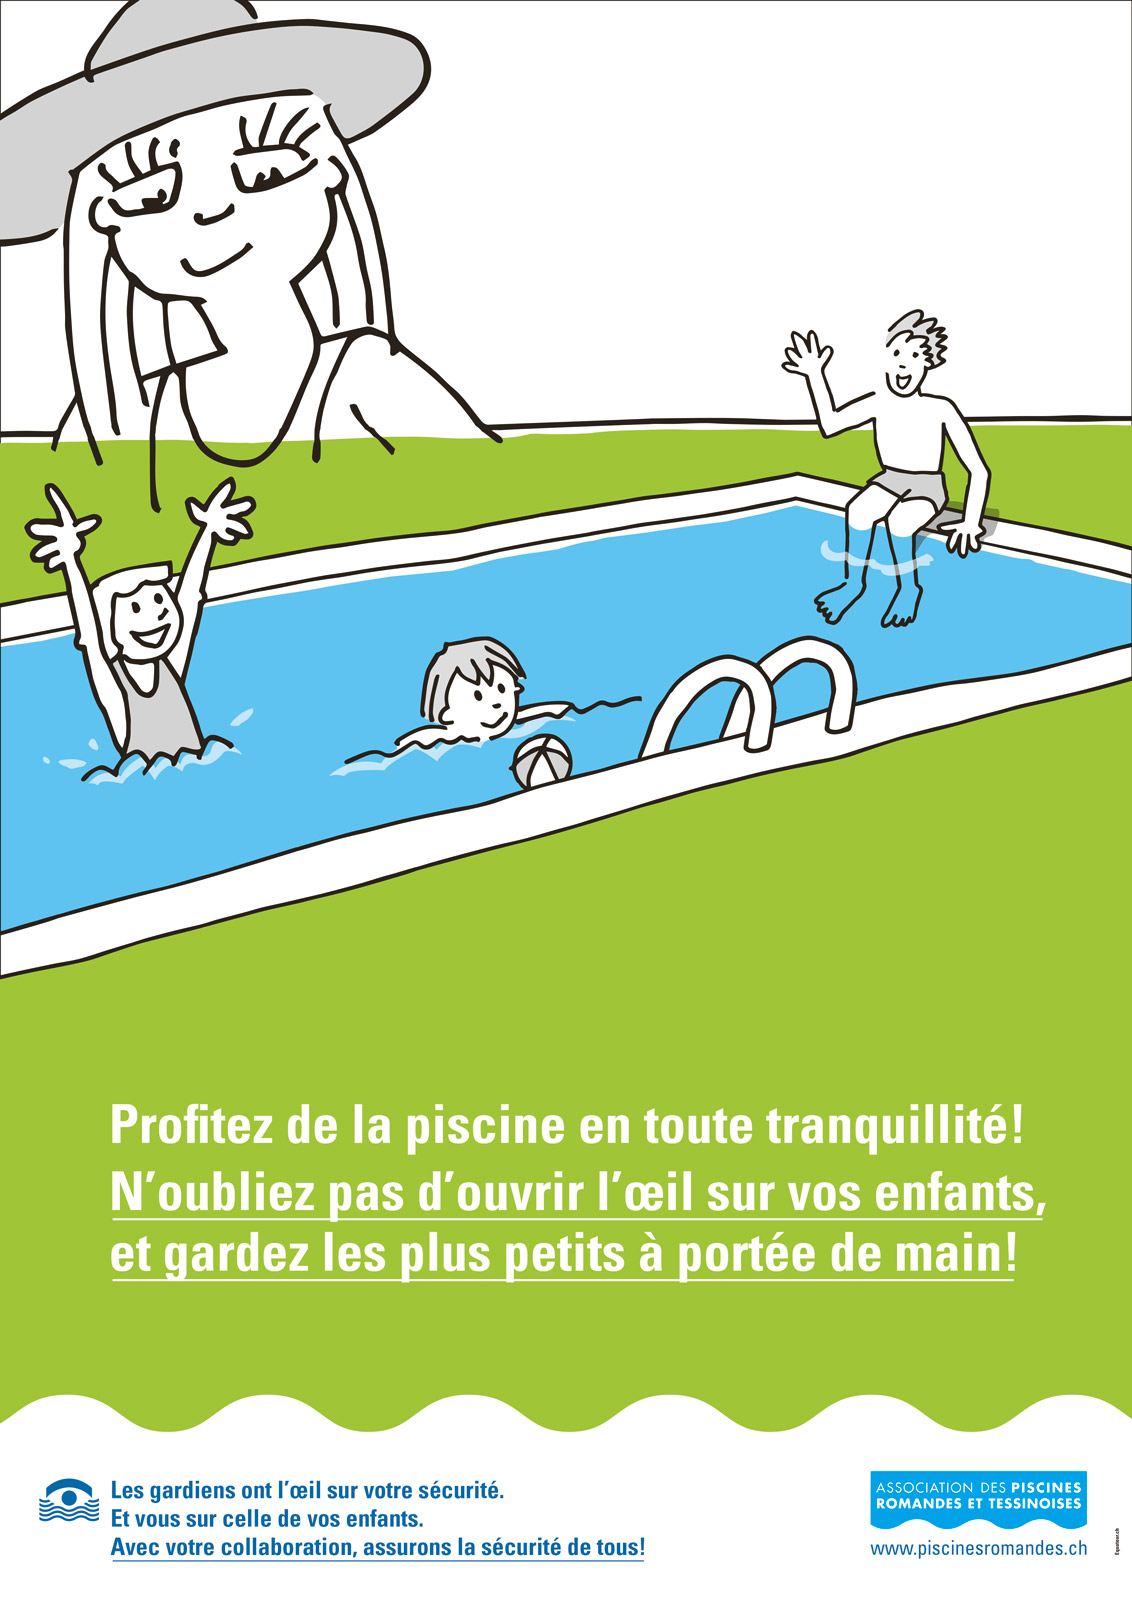 Association des Piscines Romandes et Tessinoises